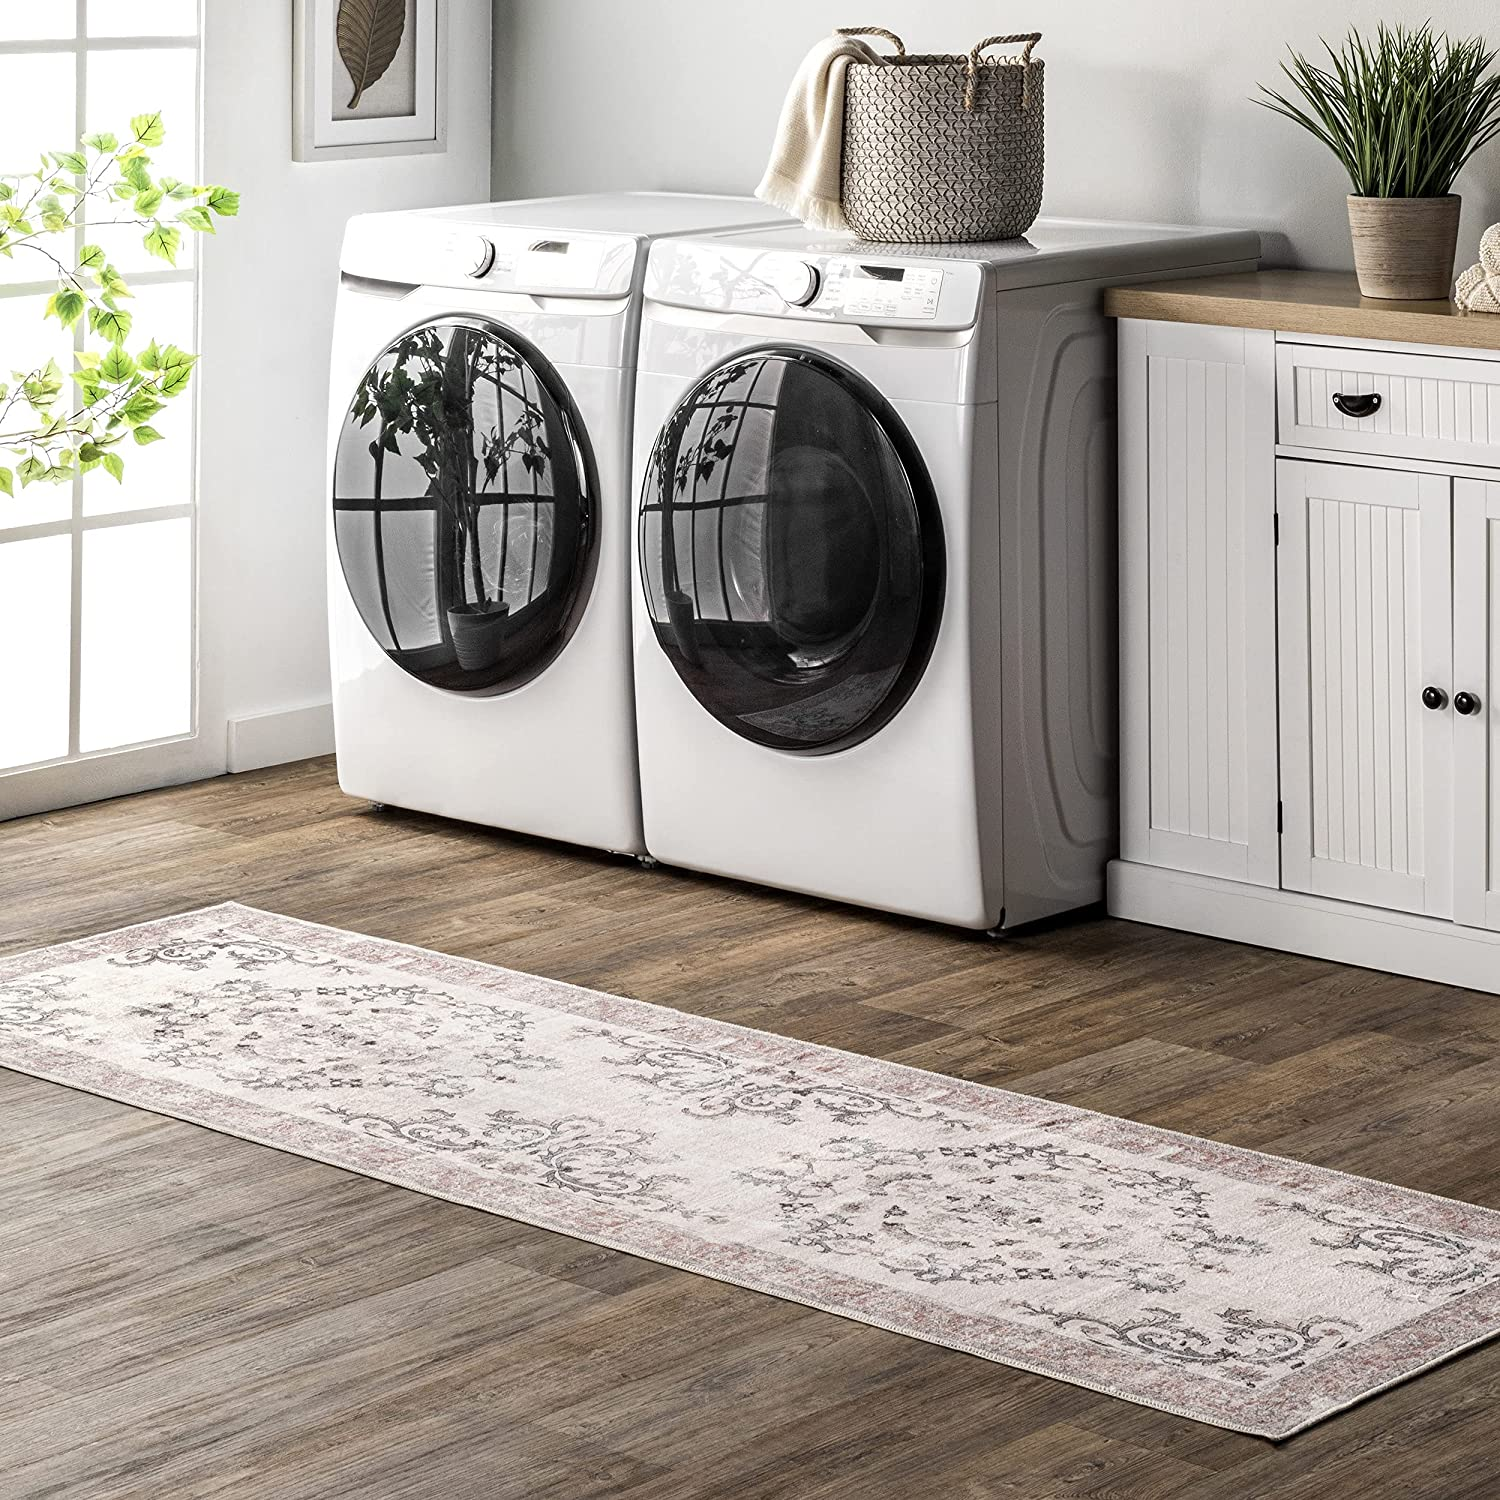 nuLOOM Layna Machine Washable Don't miss the campaign Distressed National uniform free shipping 2' Rug Runner Vintage